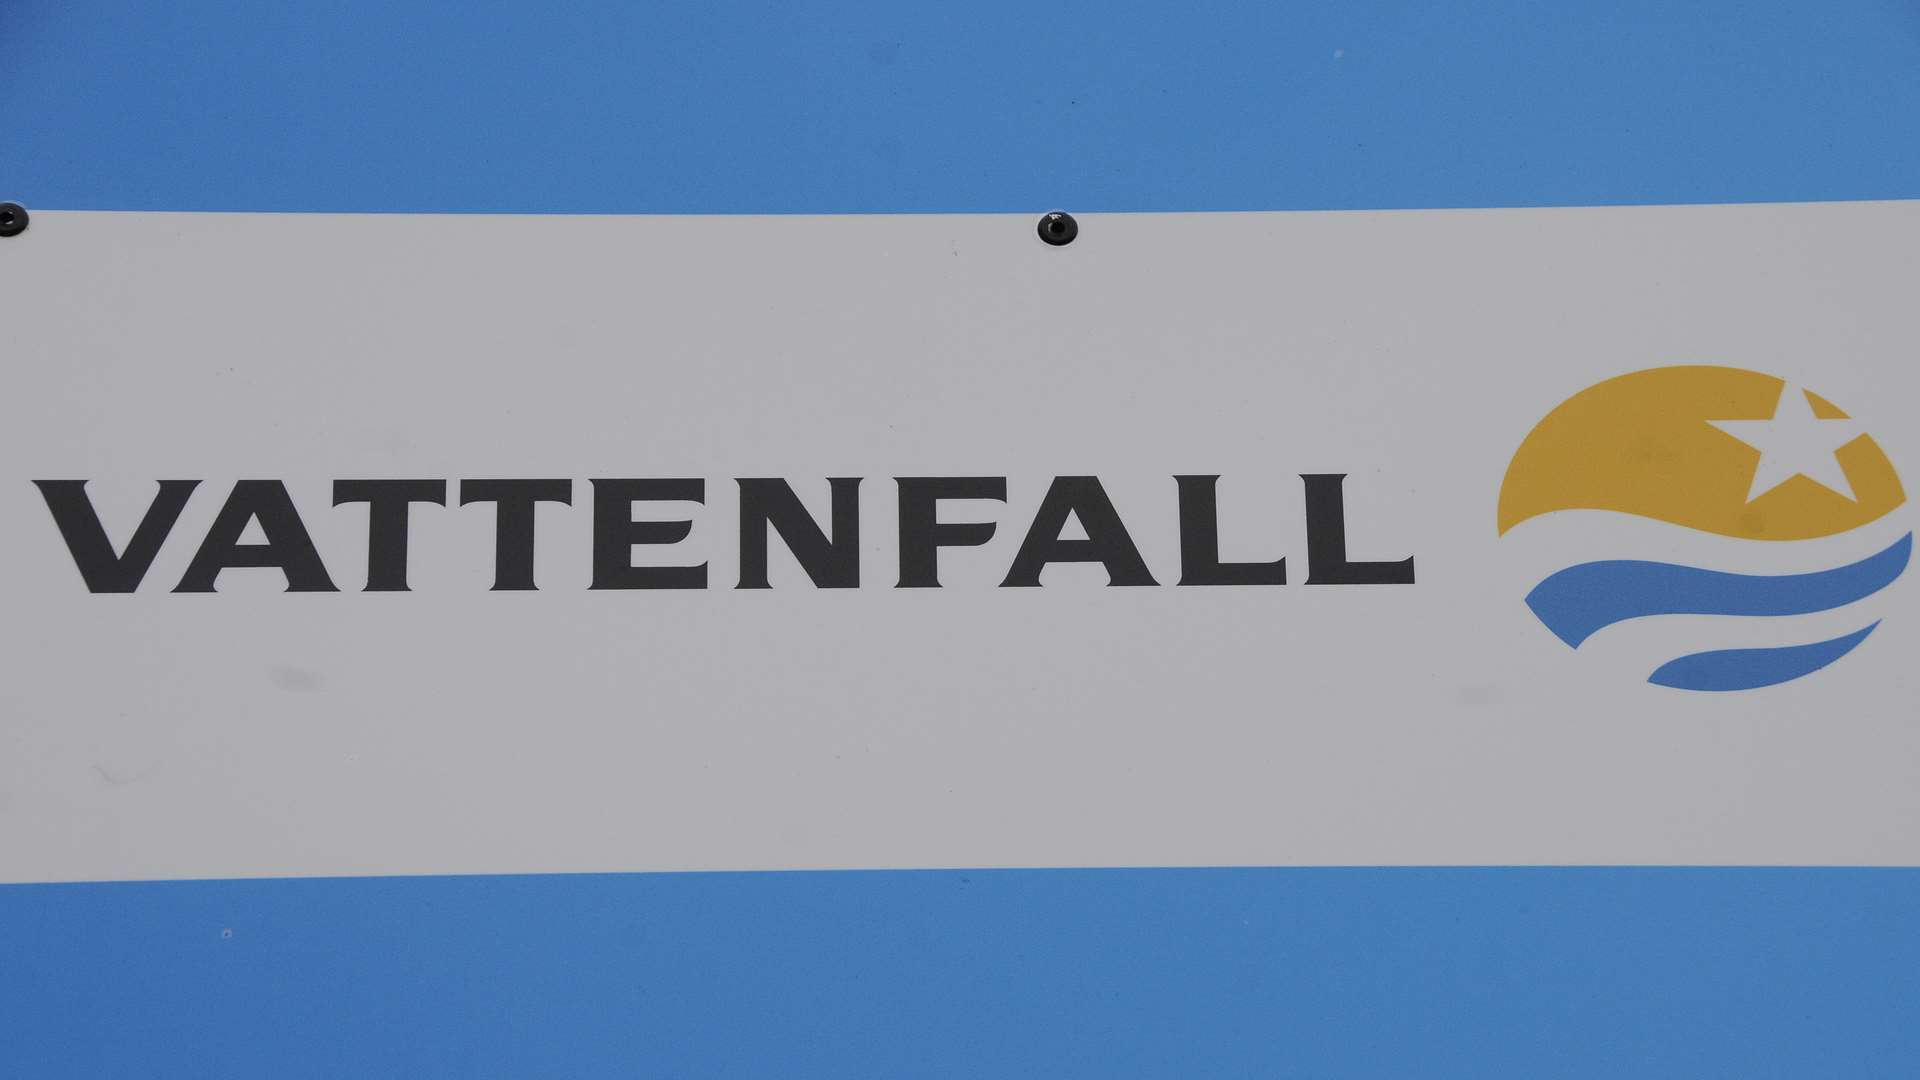 Vattenfall is hosting information sessions for residents who want to learn more